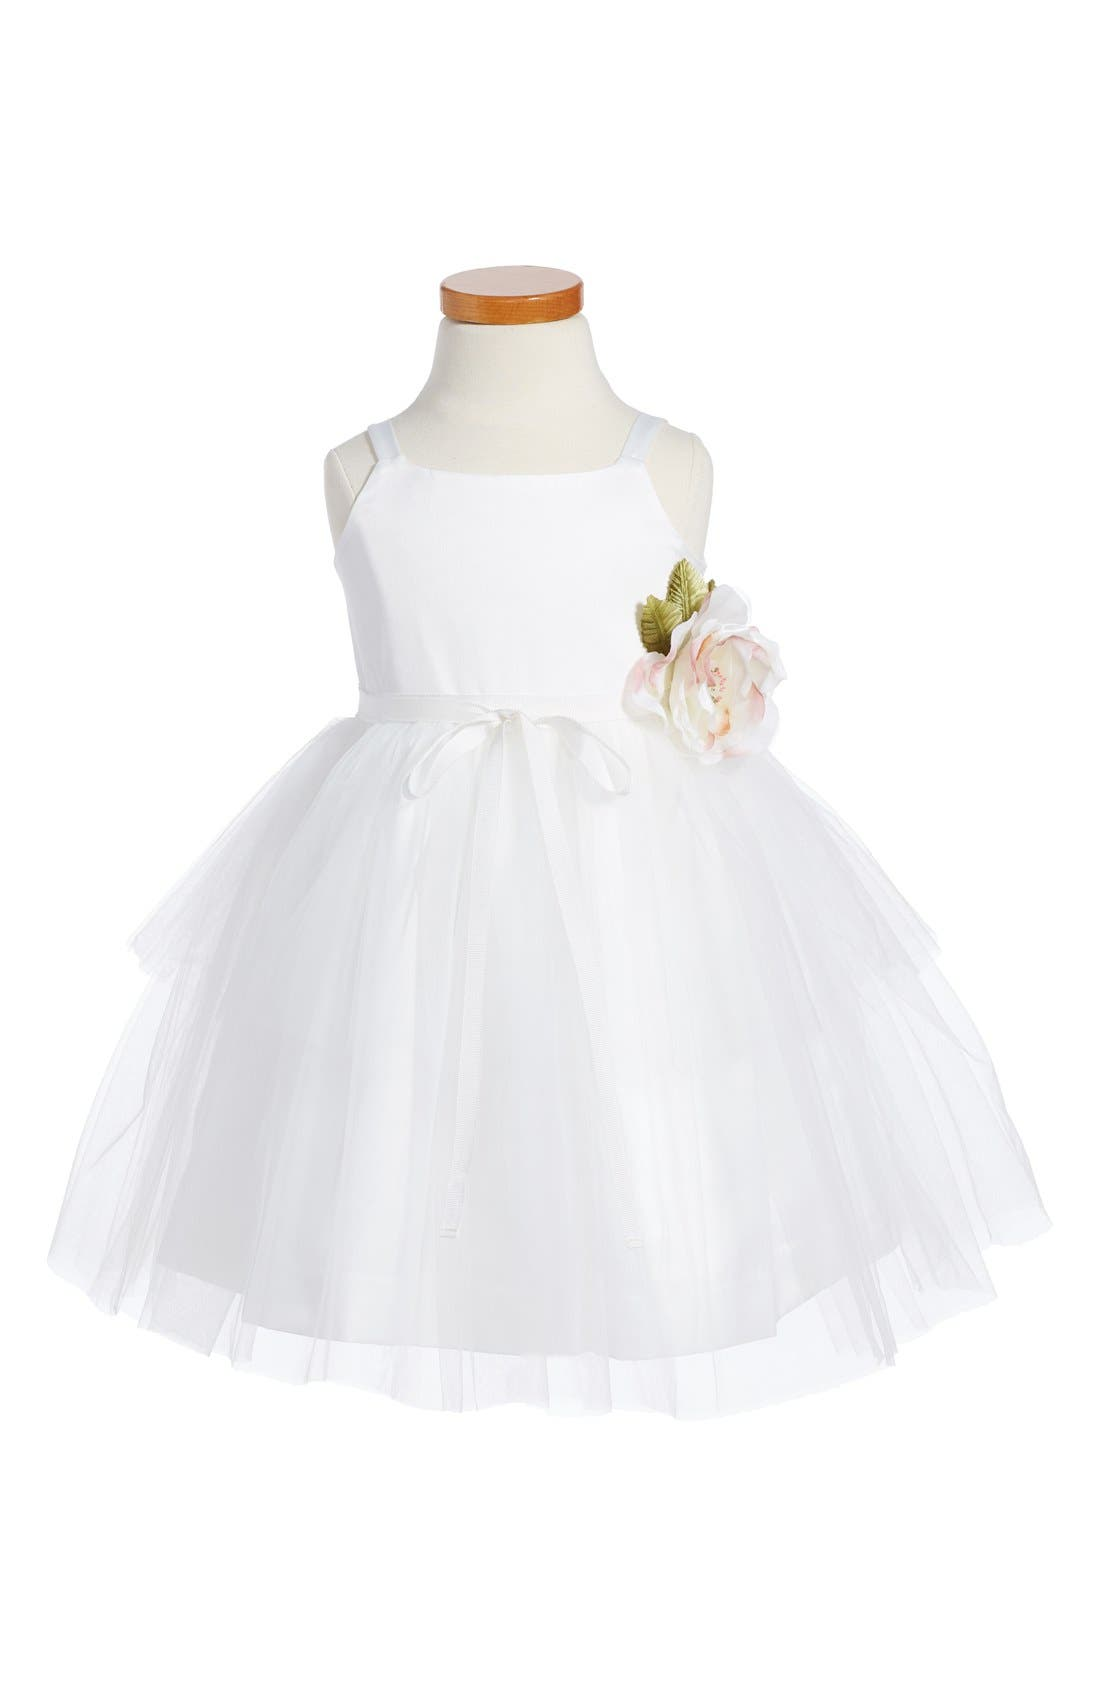 Tulle Ballerina Dress,                         Main,                         color, IVORY